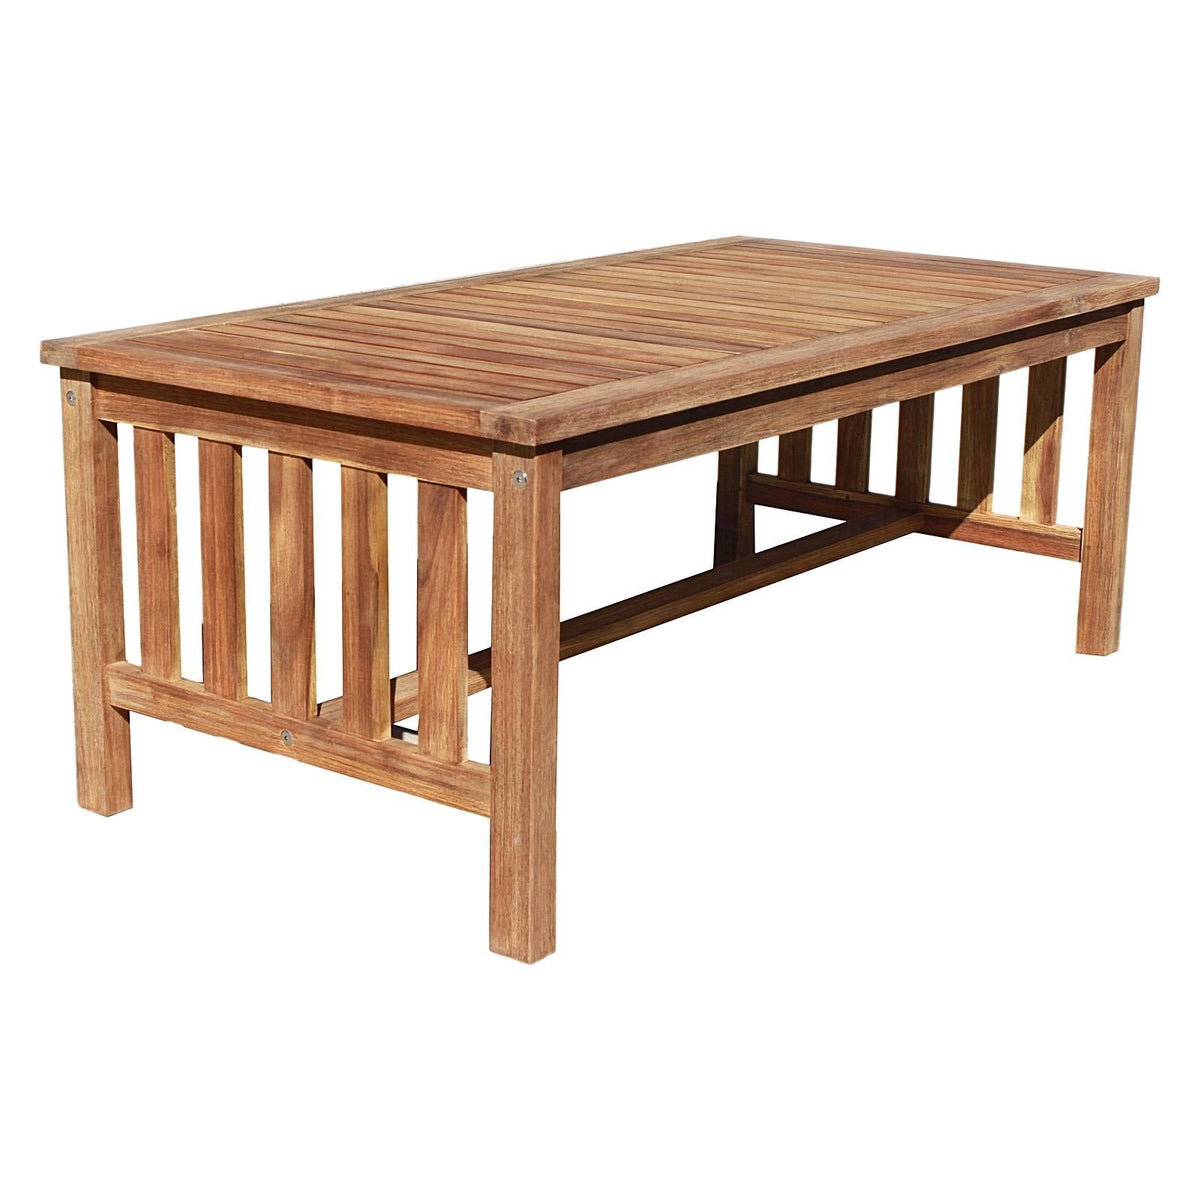 Classic Outdoor Coffee Table - Outdoor Living Essentials